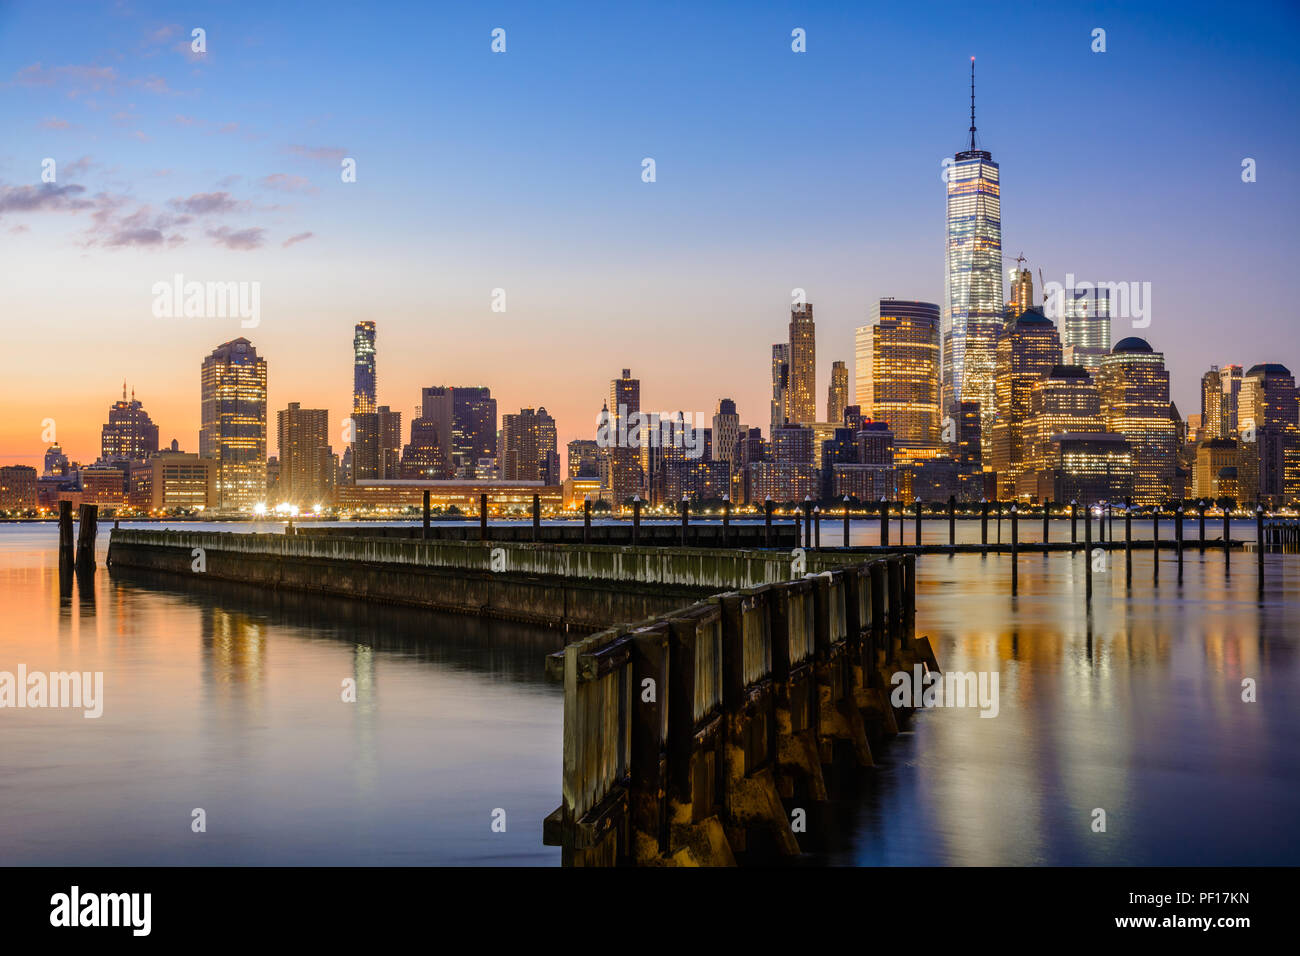 Downtown New York and Lower Manhattan as seen from the Jersey City side of the Hudson River. - Stock Image